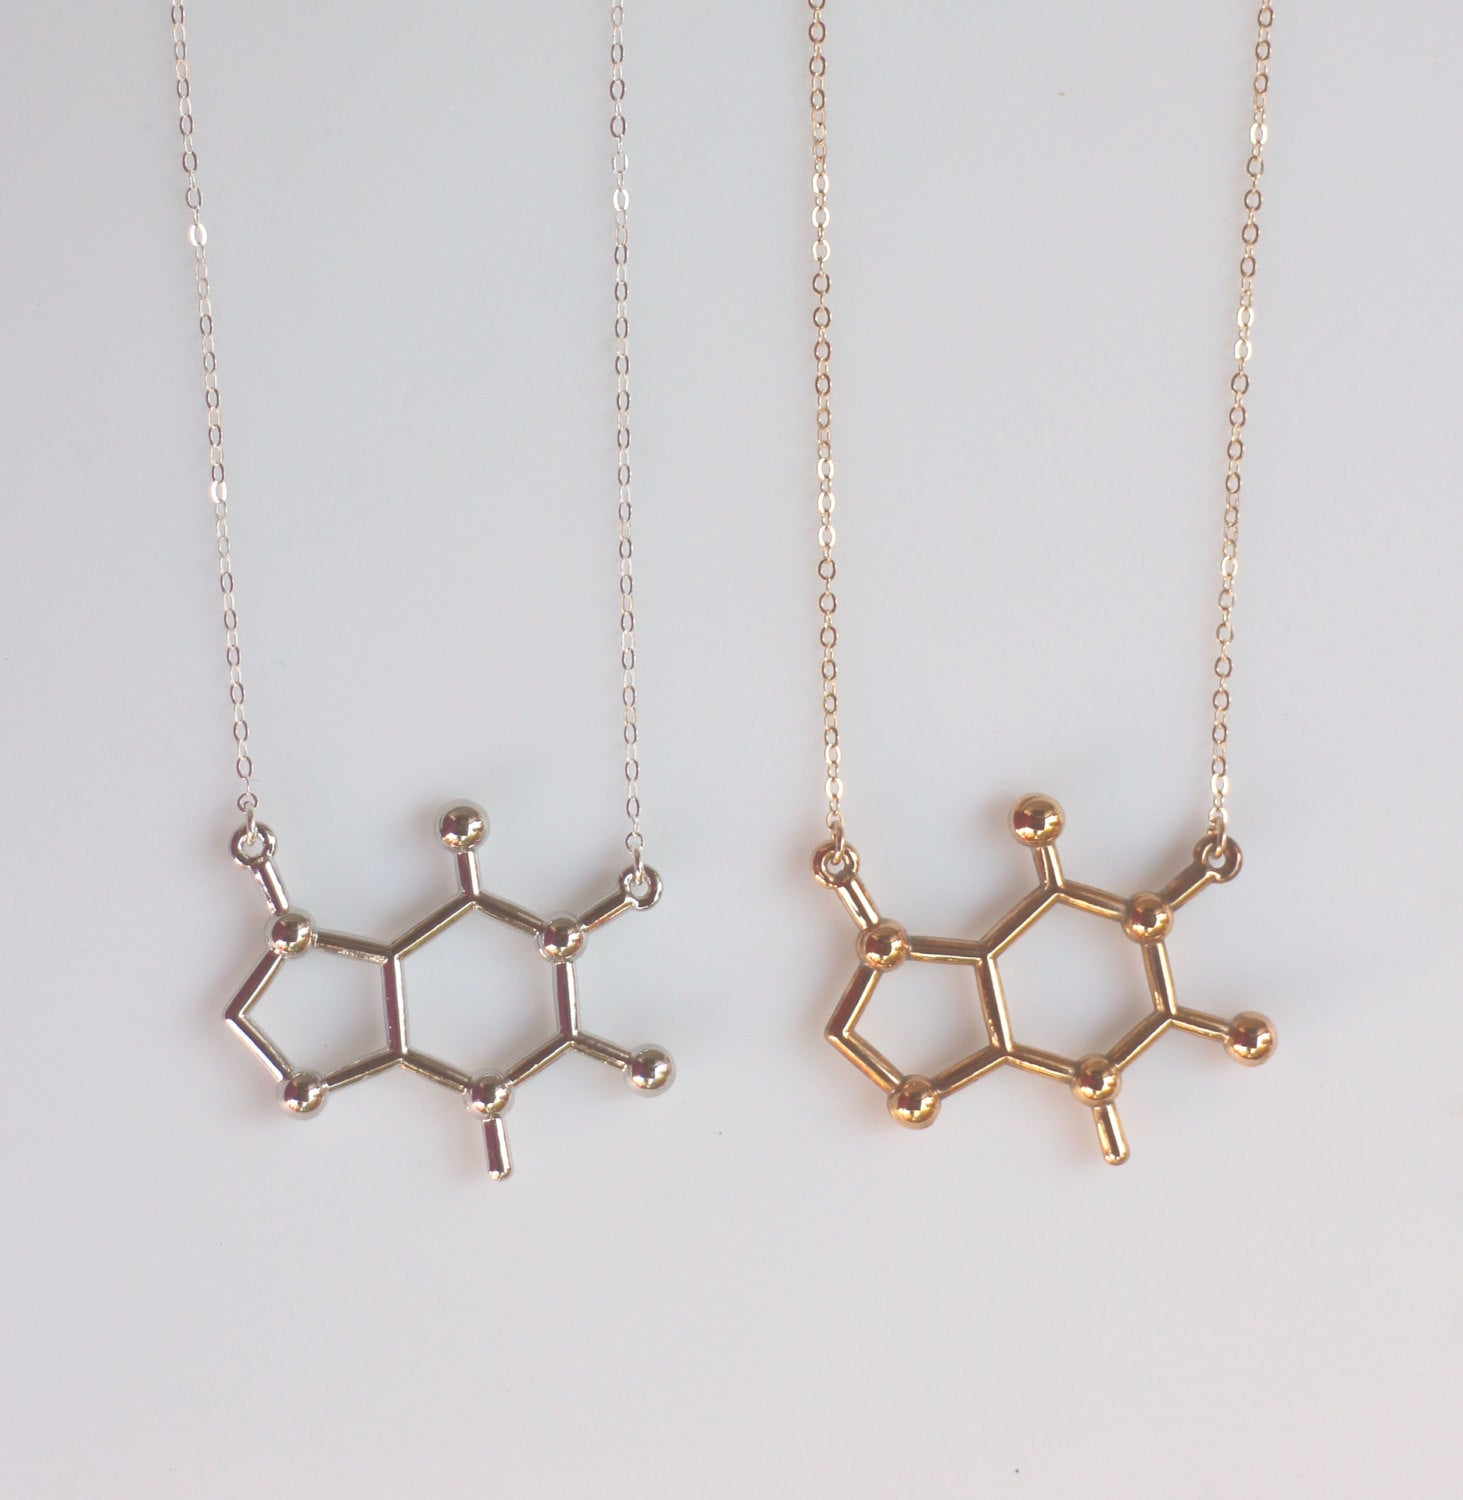 Caffeine Molecule Pendant with Necklace B9KQfcN85k